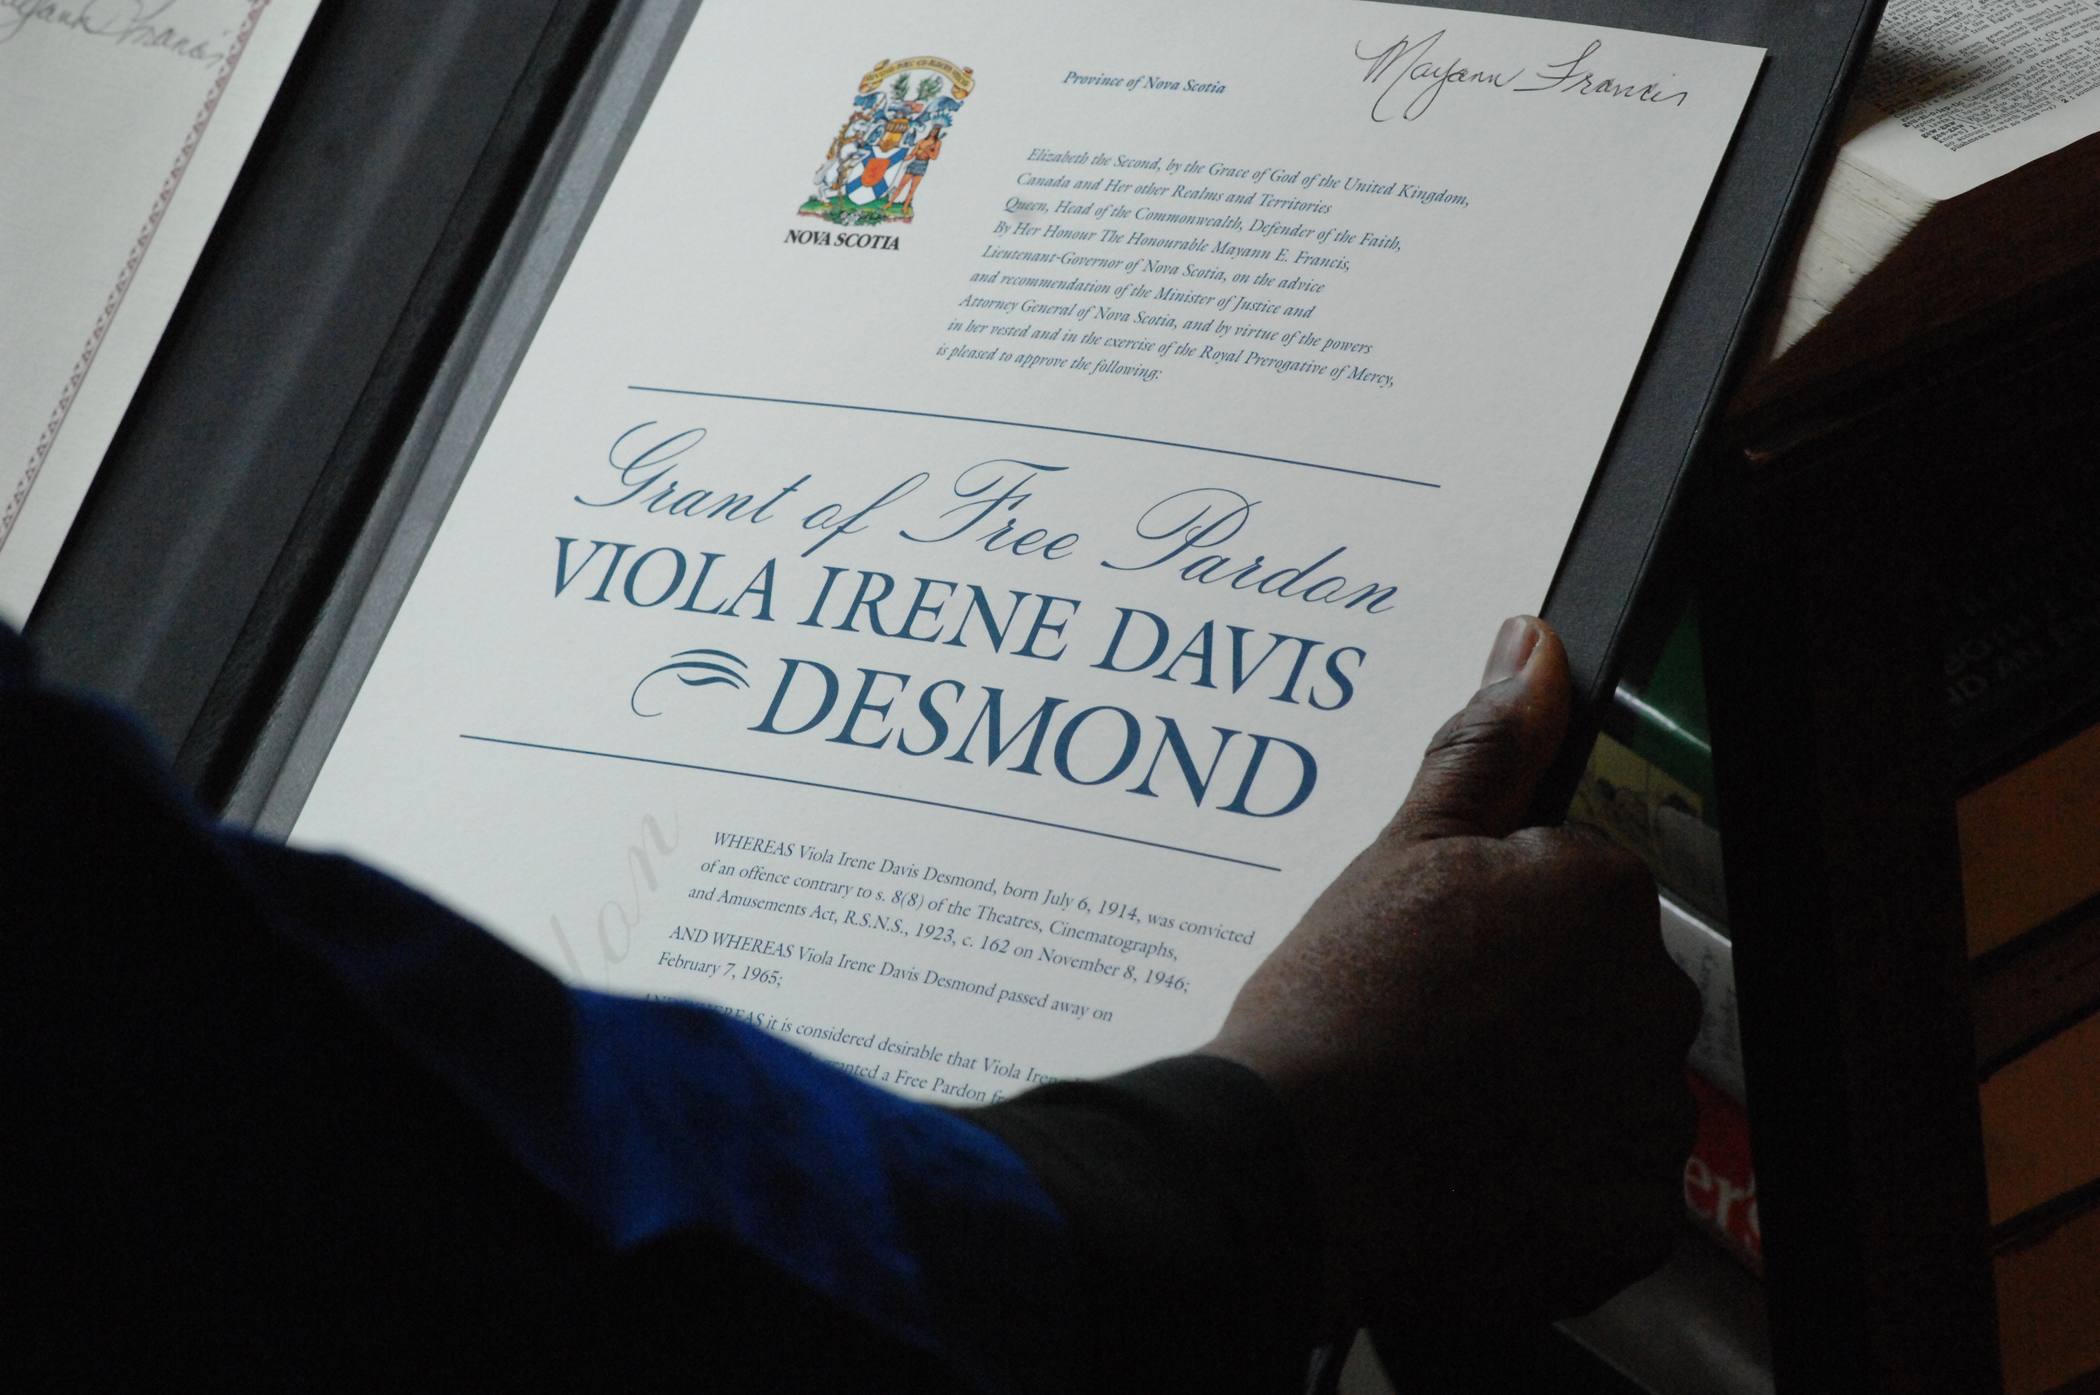 Late viola desmond granted apology free pardon novascotia a ceremonial certificate to mark the free pardon given viola desmond with the signature of lt gov mayann francis aiddatafo Gallery